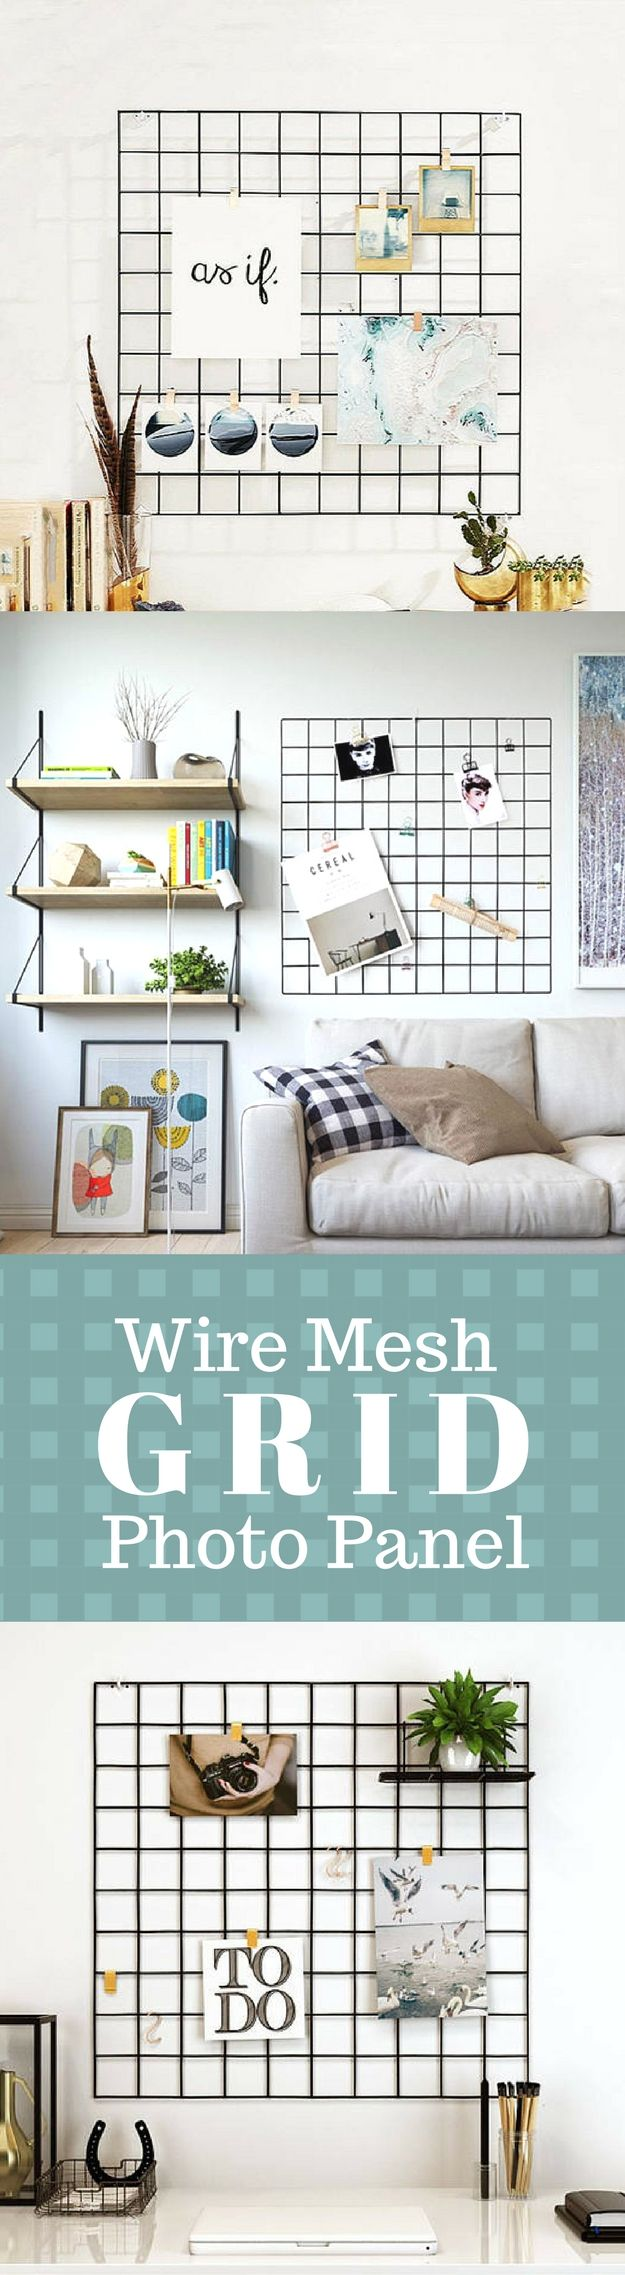 Grid Photo Wall | Wire Mesh Display Panel | Decorative Iron Rack ...